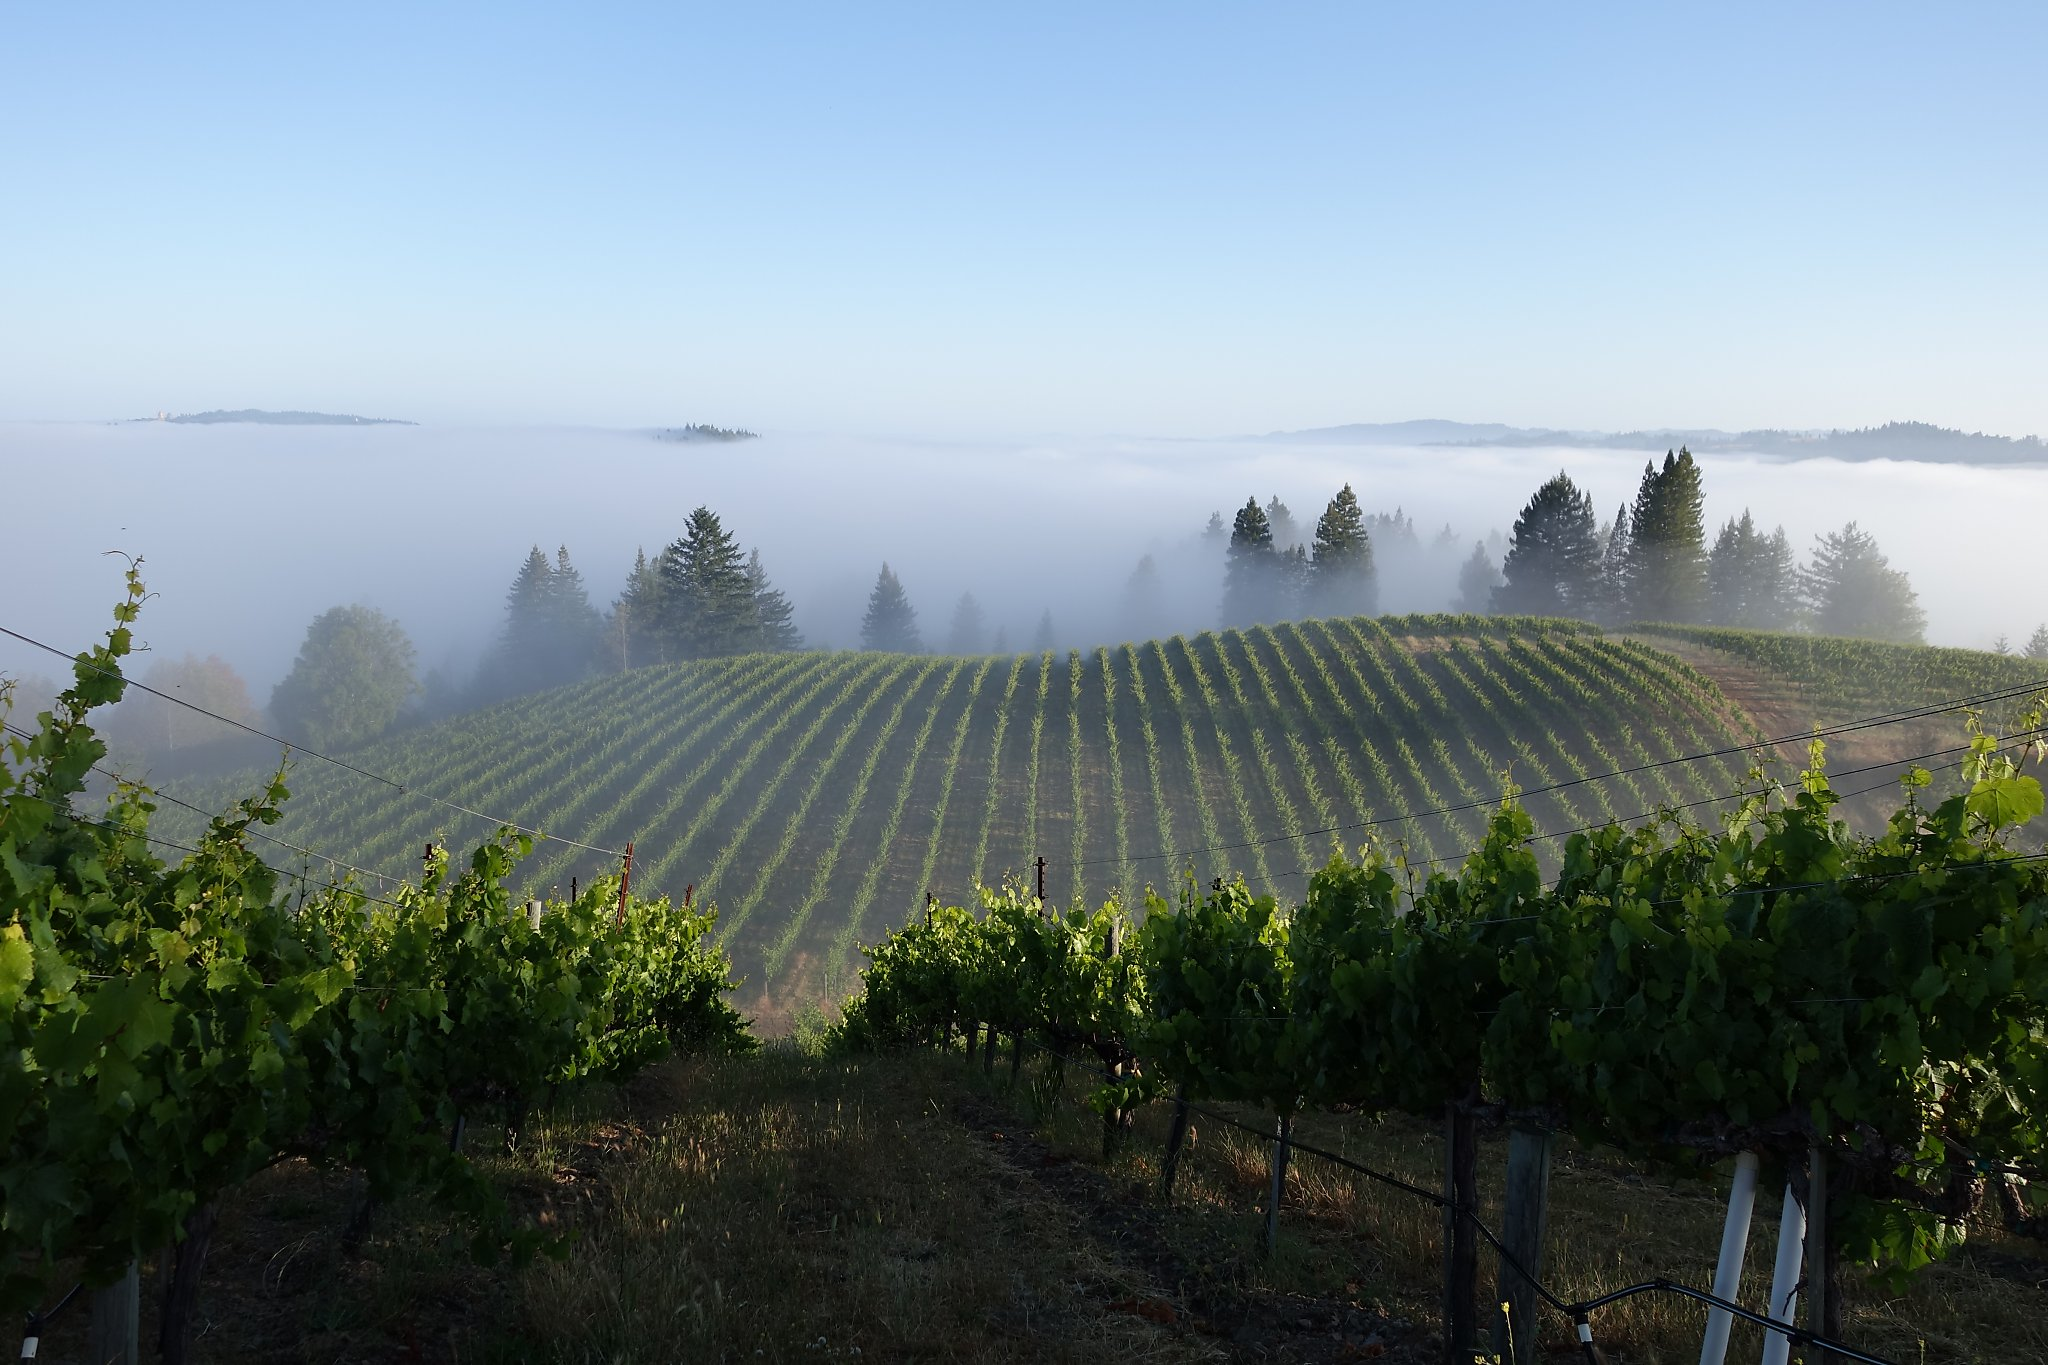 An 'entry-level' Sonoma Pinot Noir that punches way above its weight